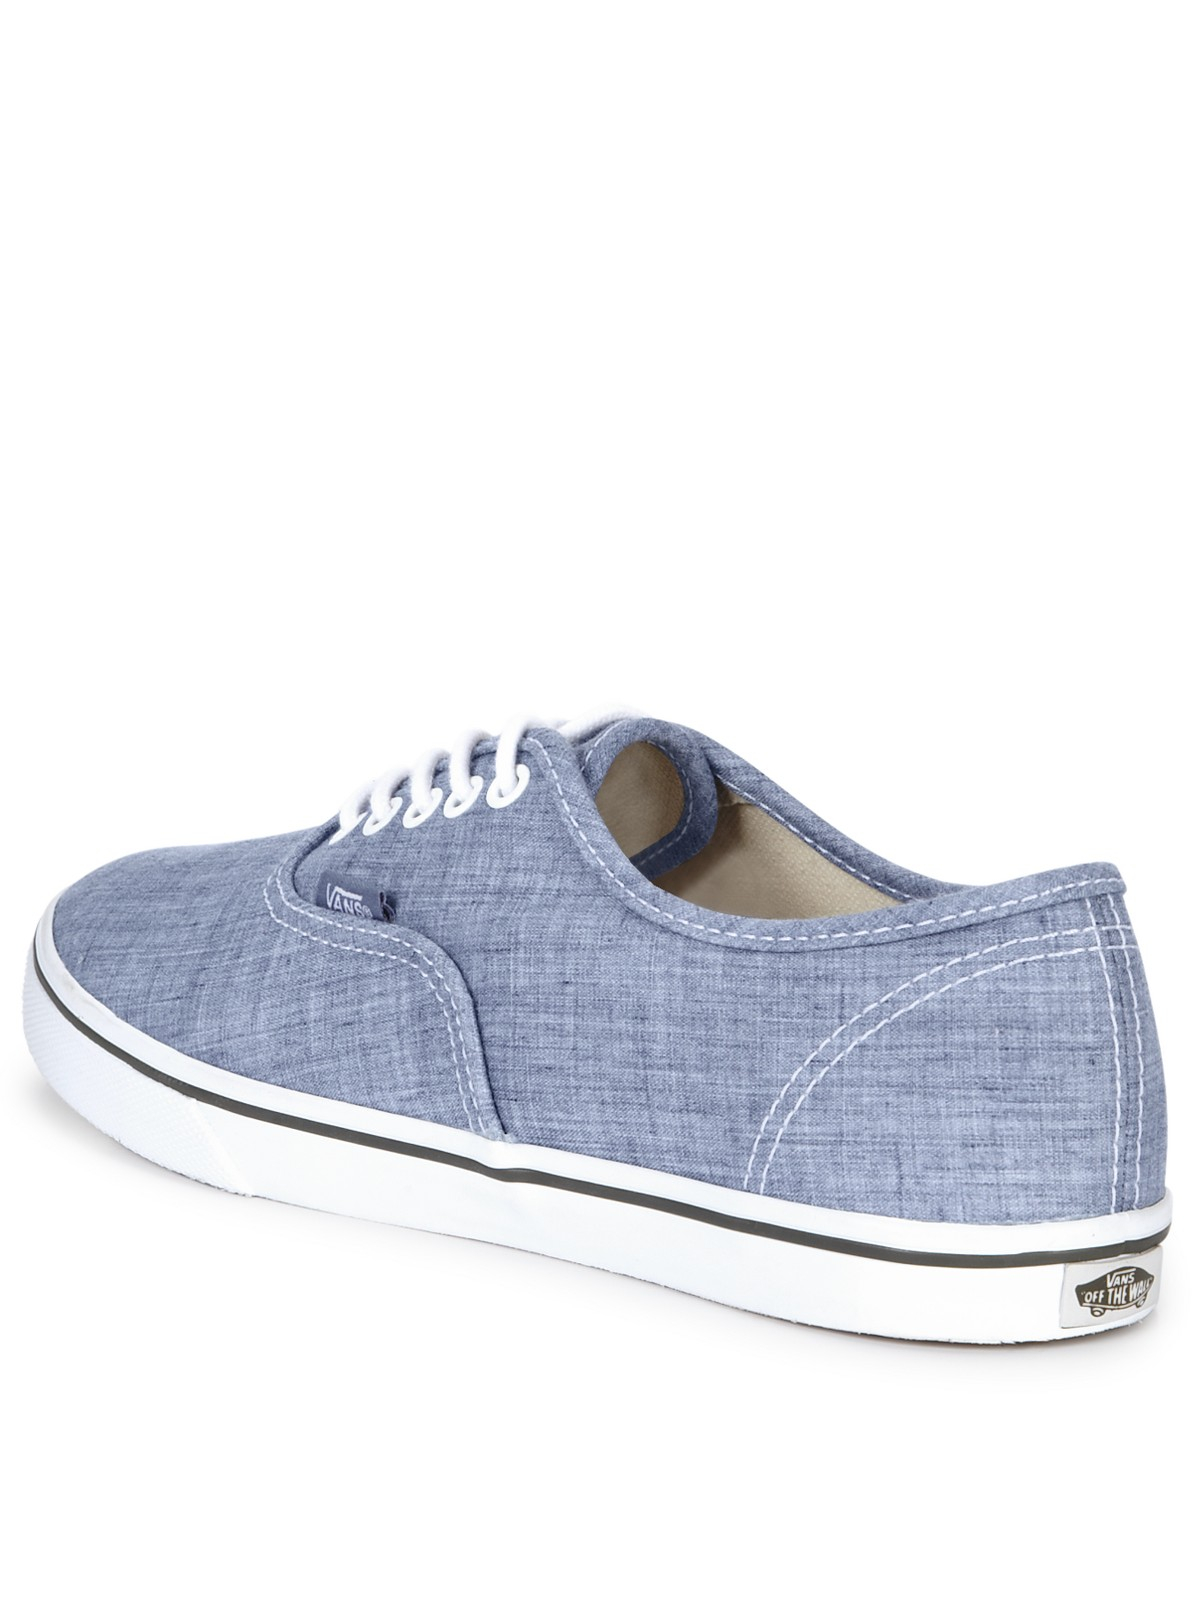 chambray authentic lo pro vans  28548bed25